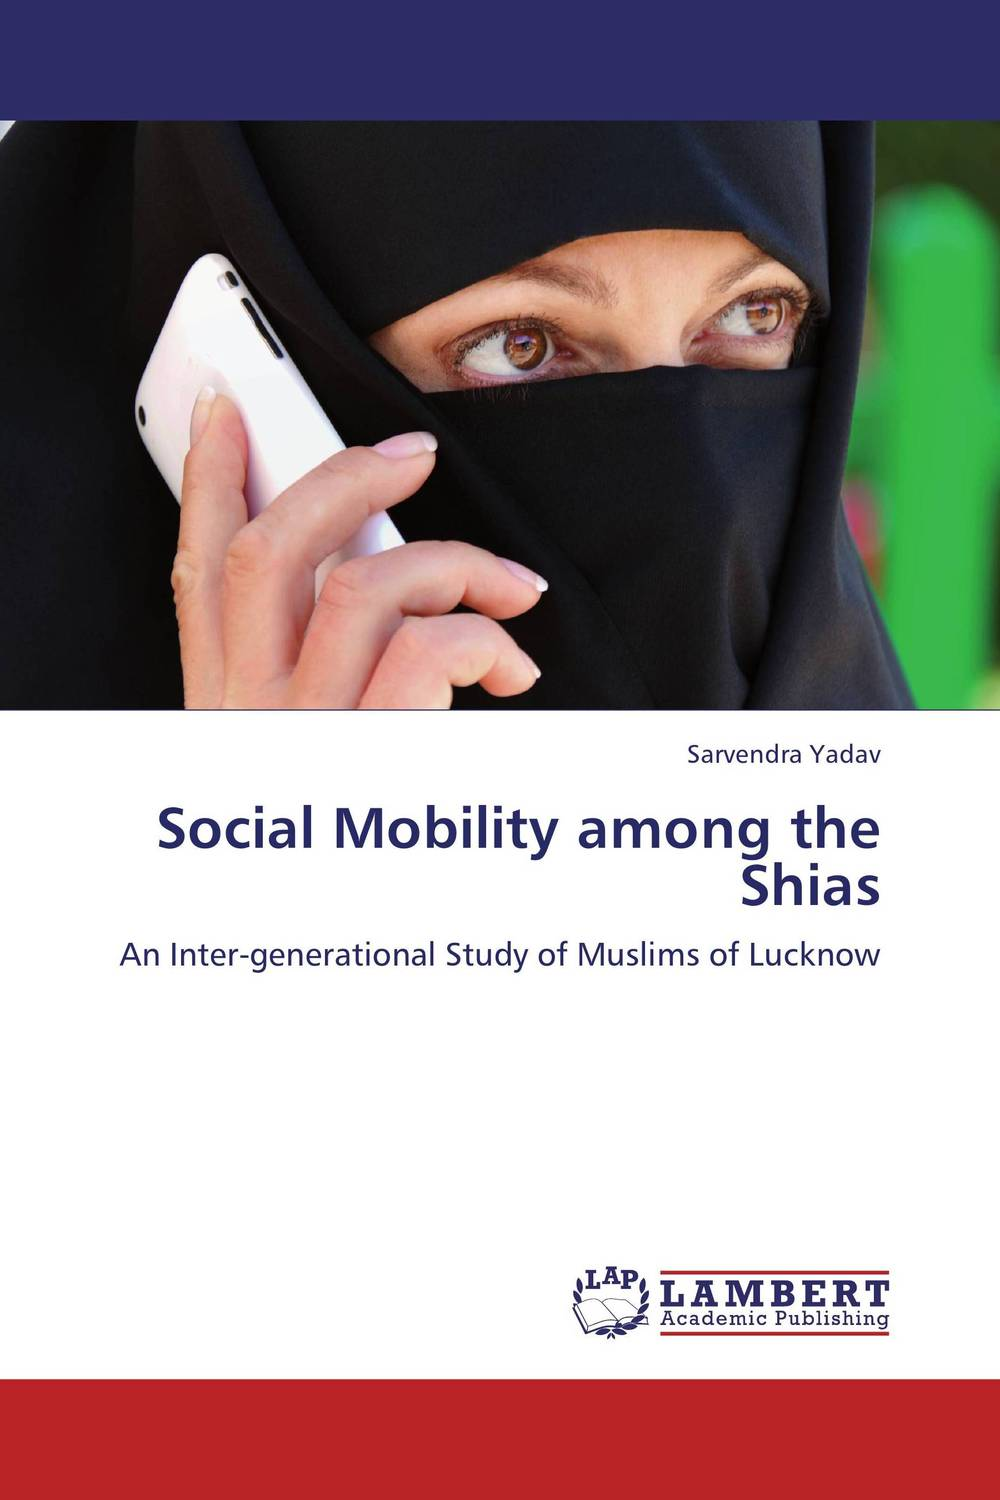 все цены на Social Mobility among the Shias